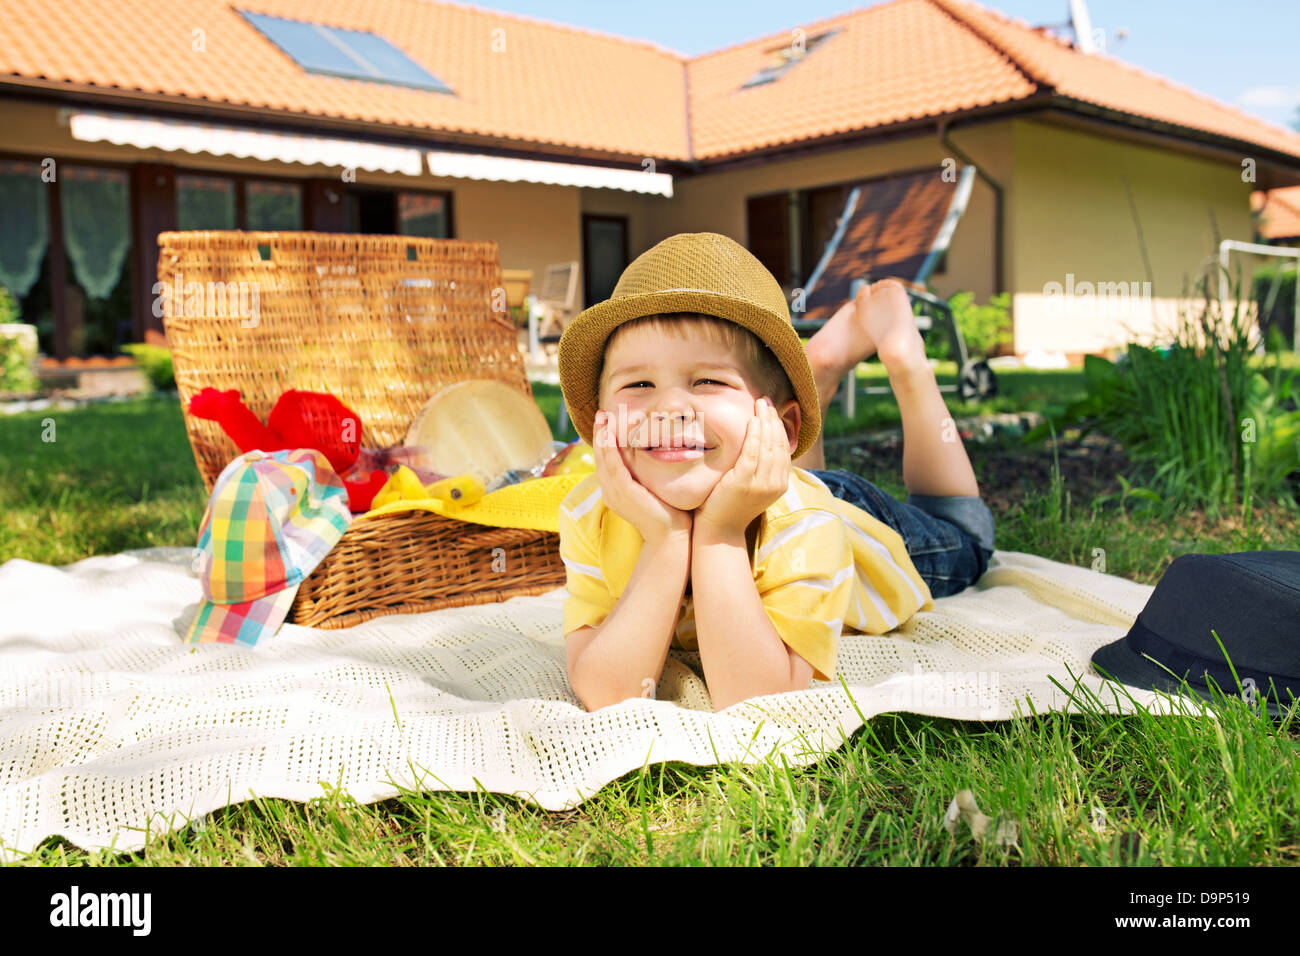 Glad little kid in the garden - Stock Image